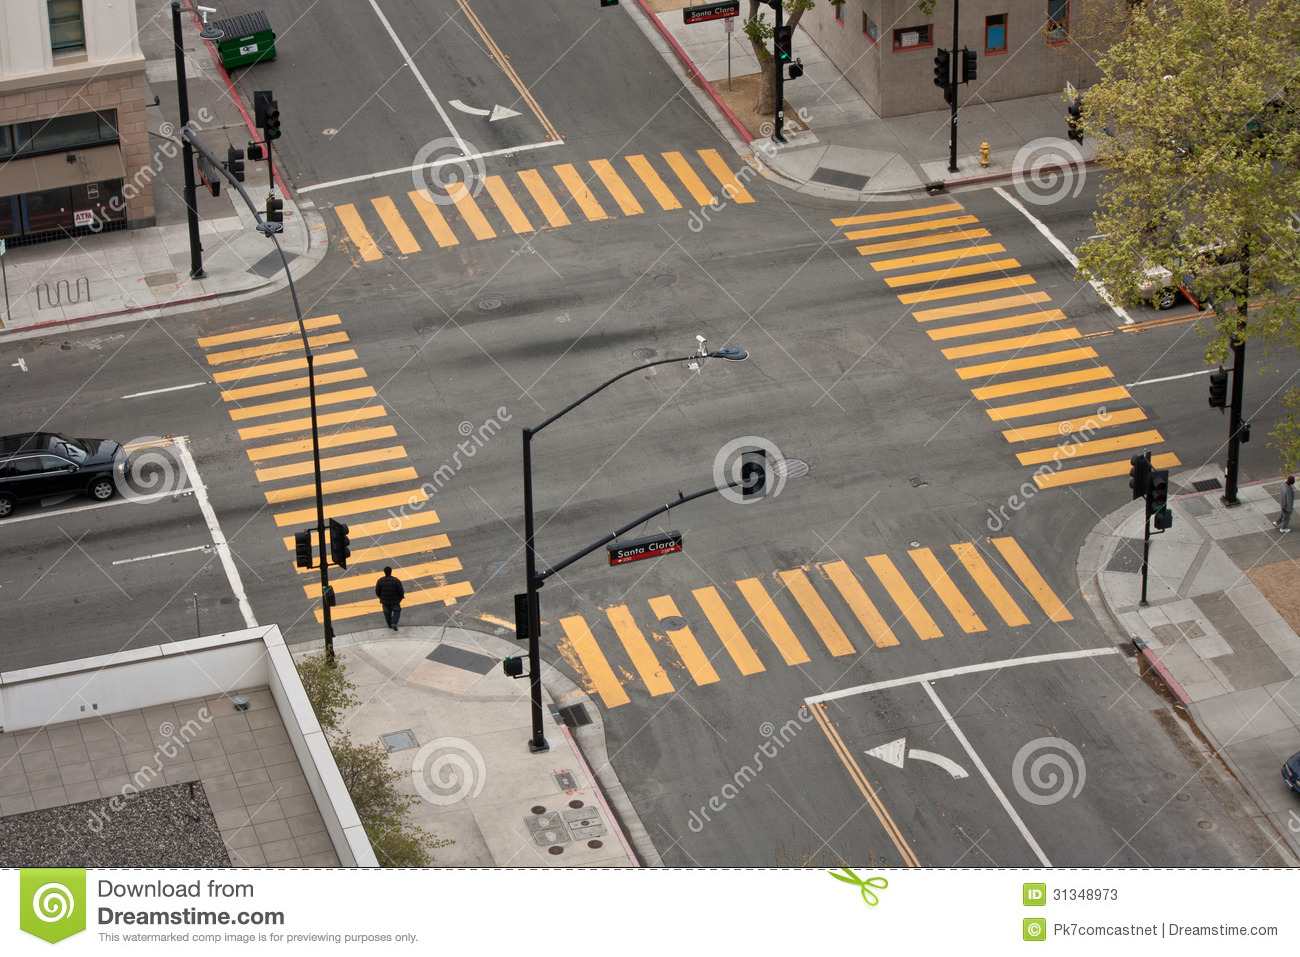 ... with yellow cross walk markings, traffic signal lights, and curb cuts